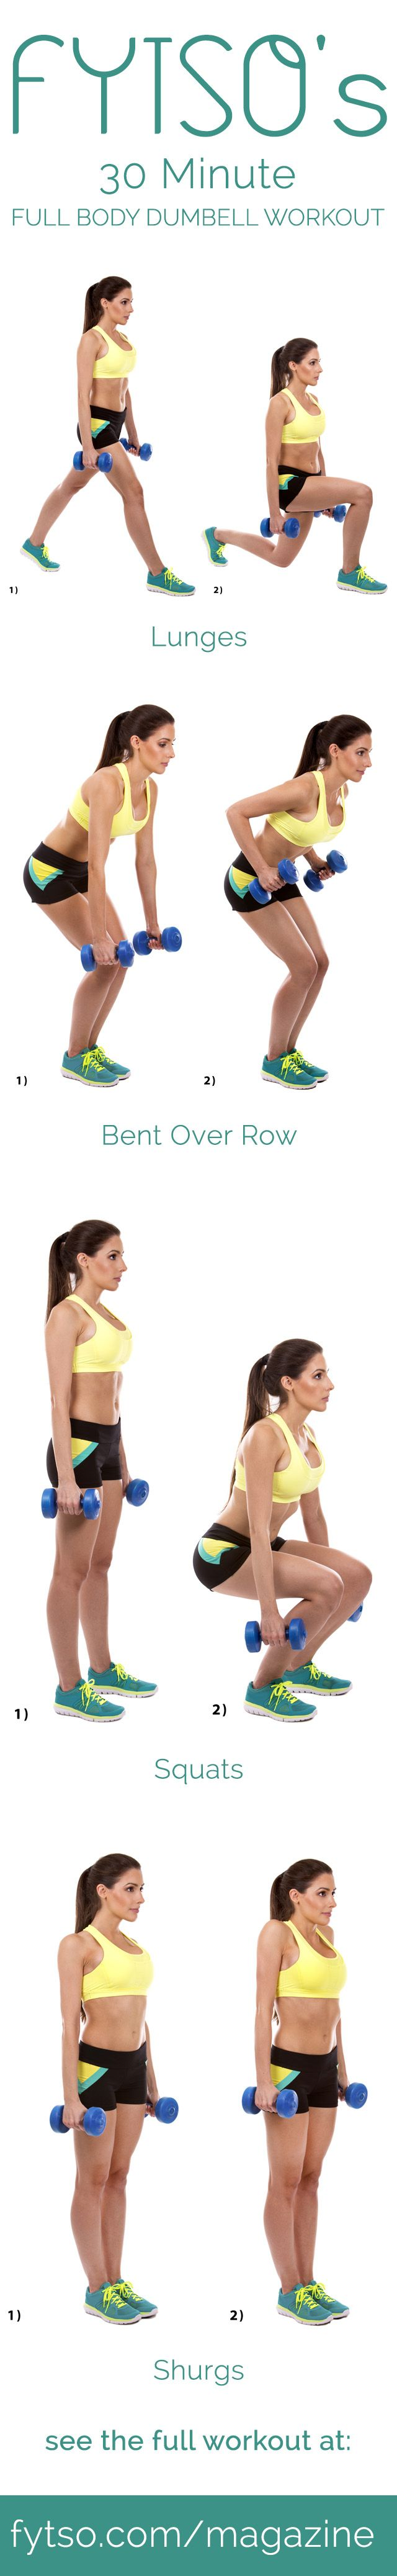 Get a really good total body workout in 30 minutes or less with only a set of dumbbells and some determination.